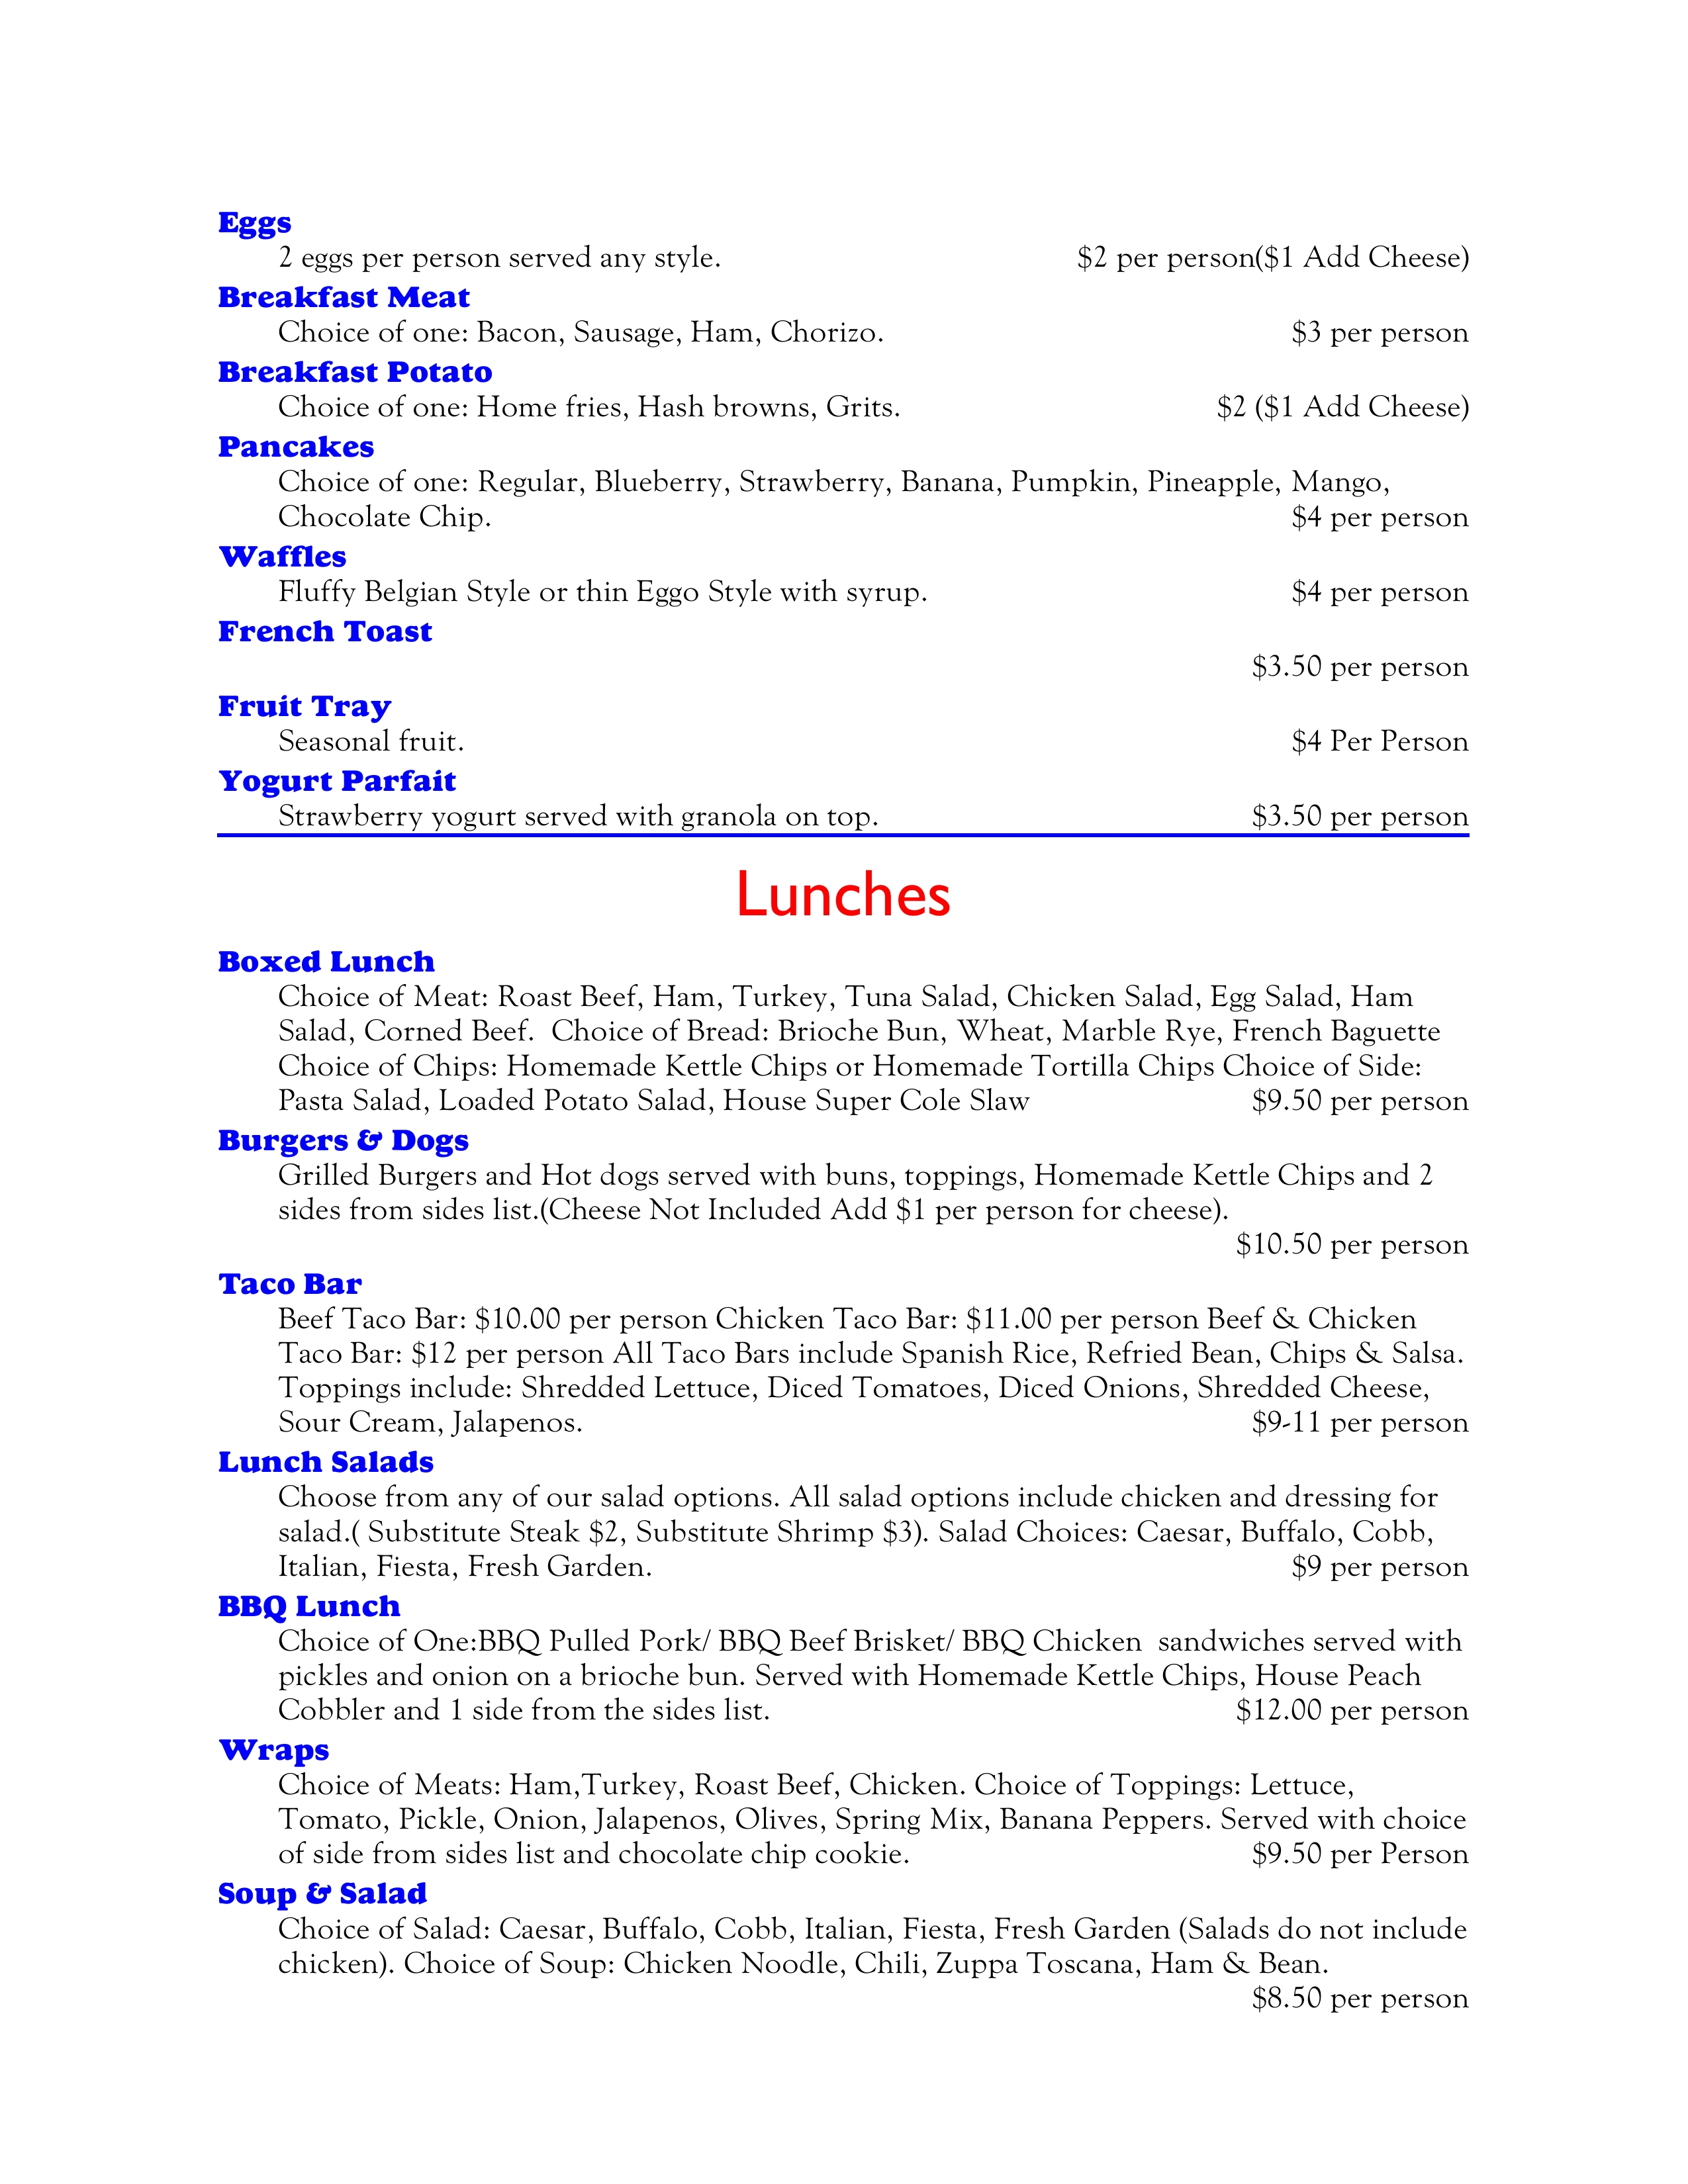 Banquet Breakfast, Lunches 3